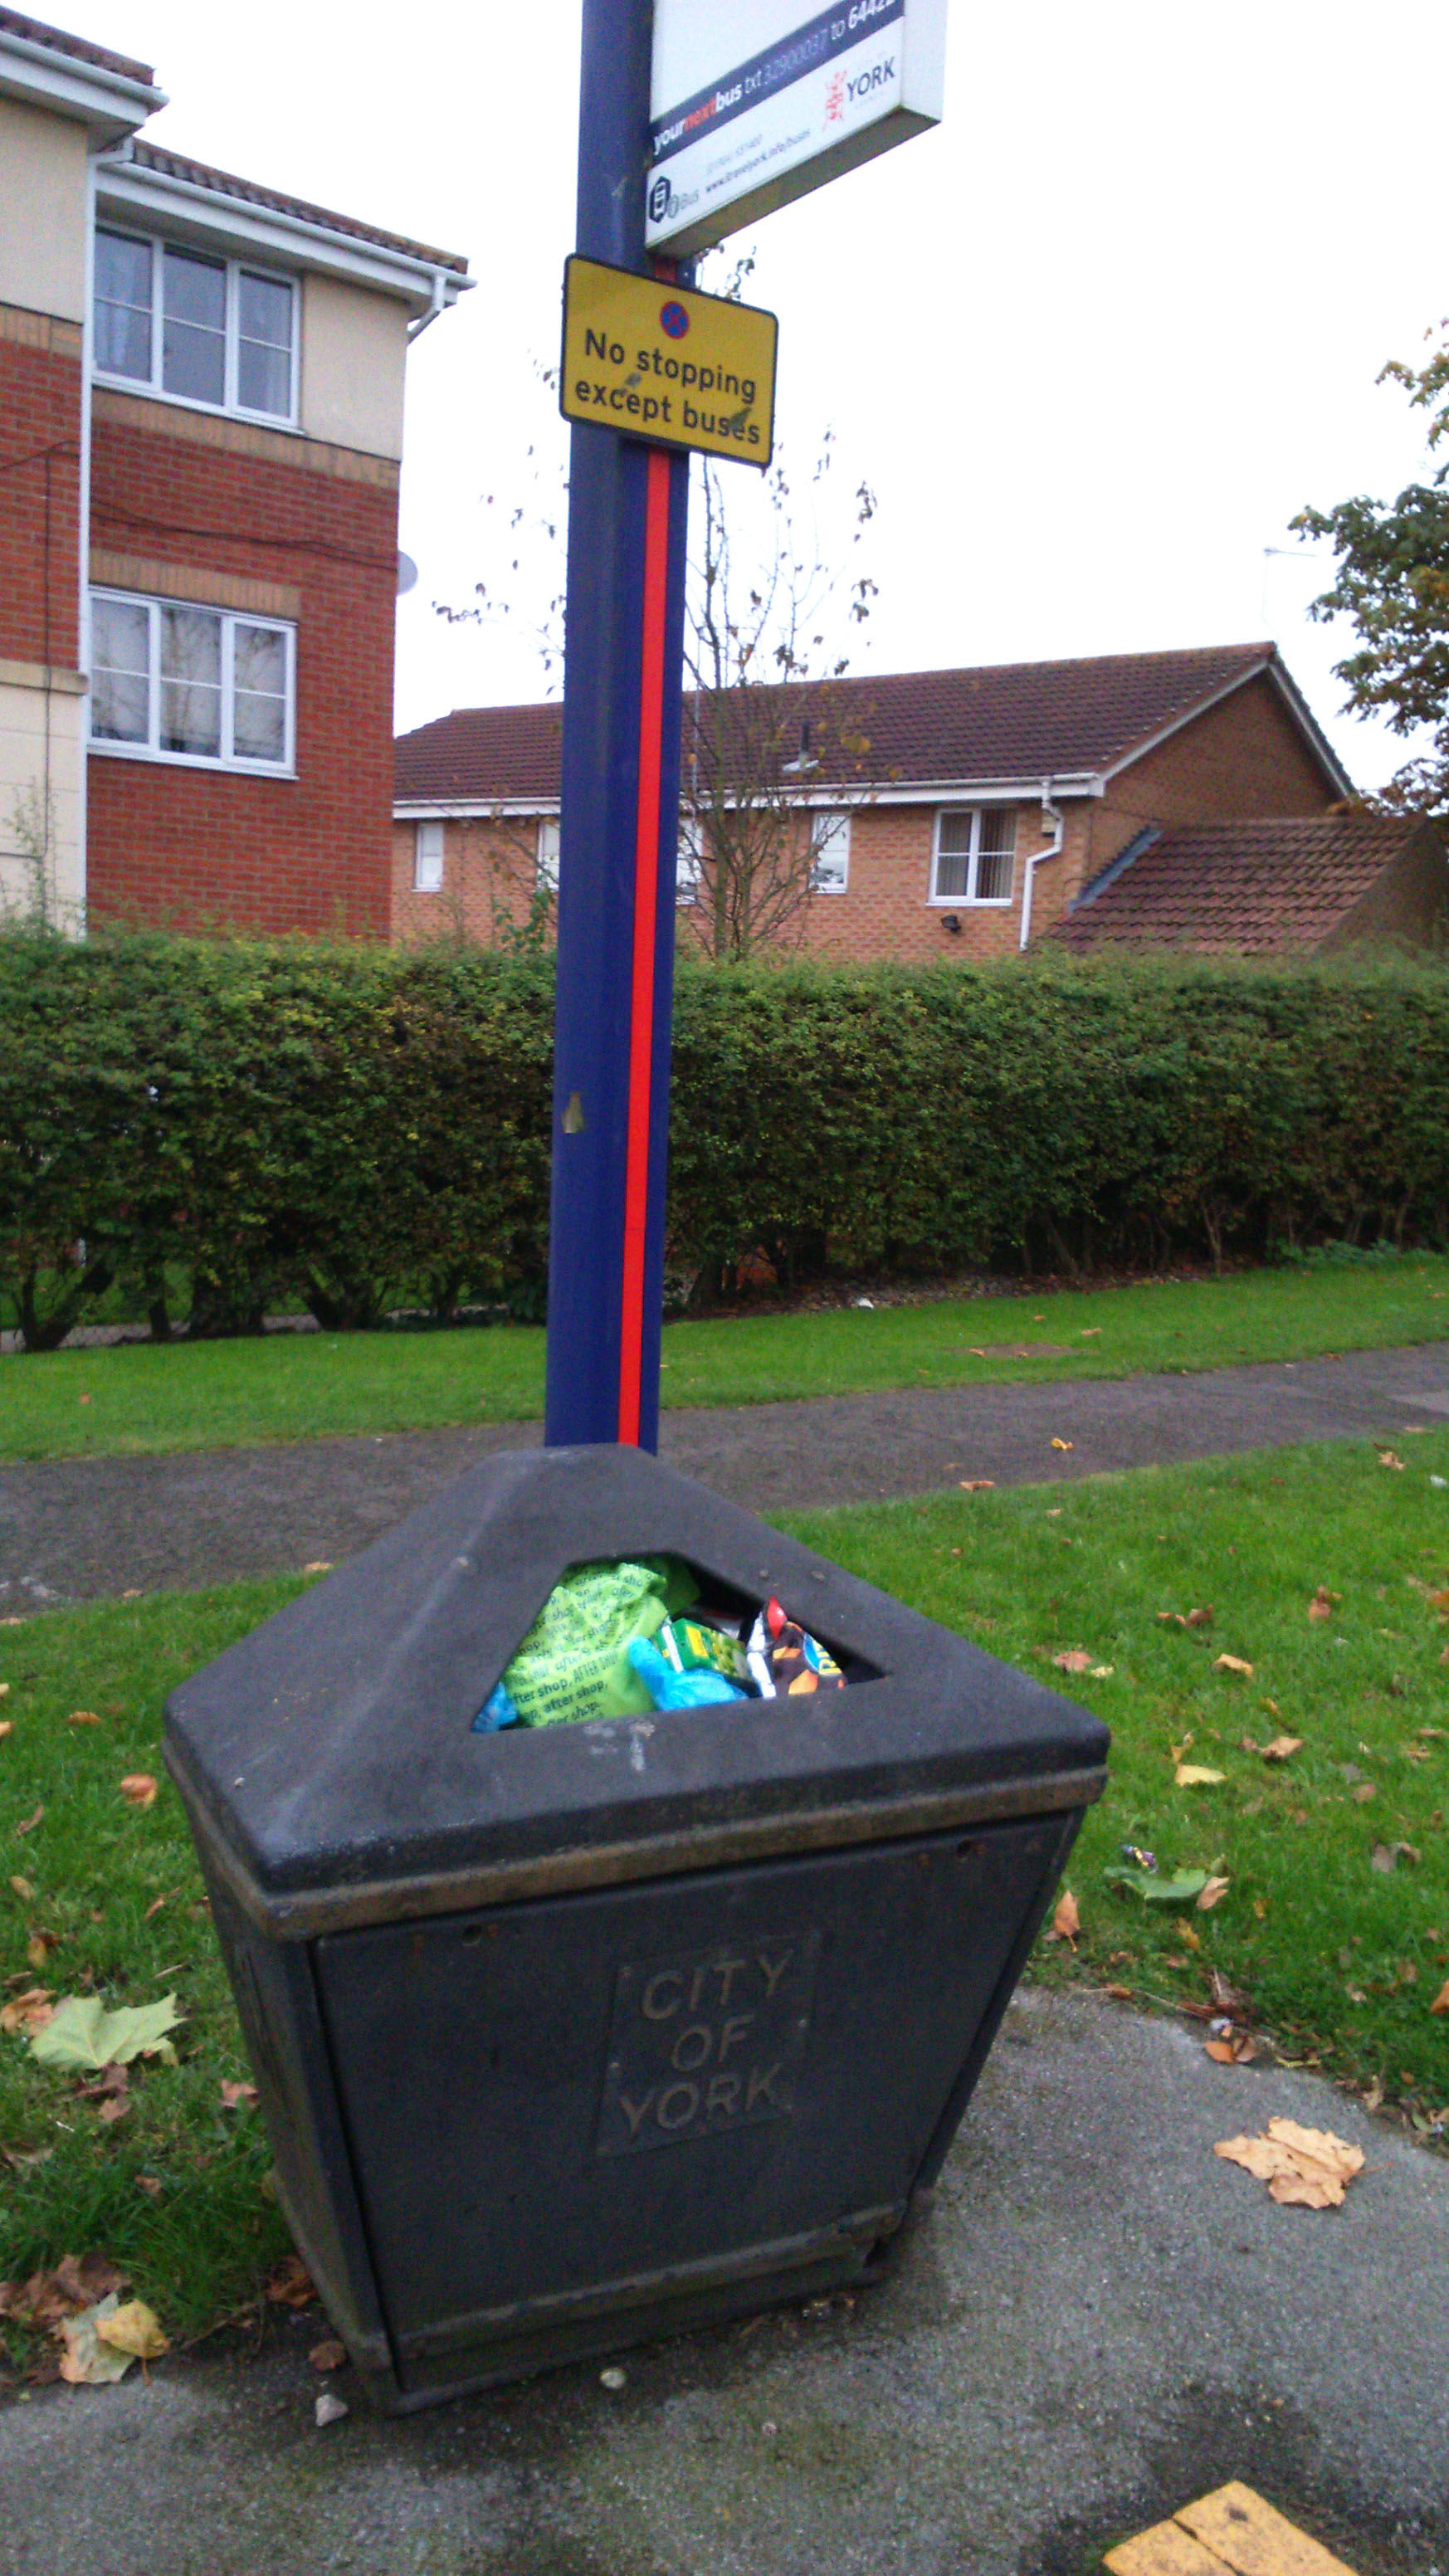 Full litter bin on Askham Lane reported by Cllr Sheena Jackson